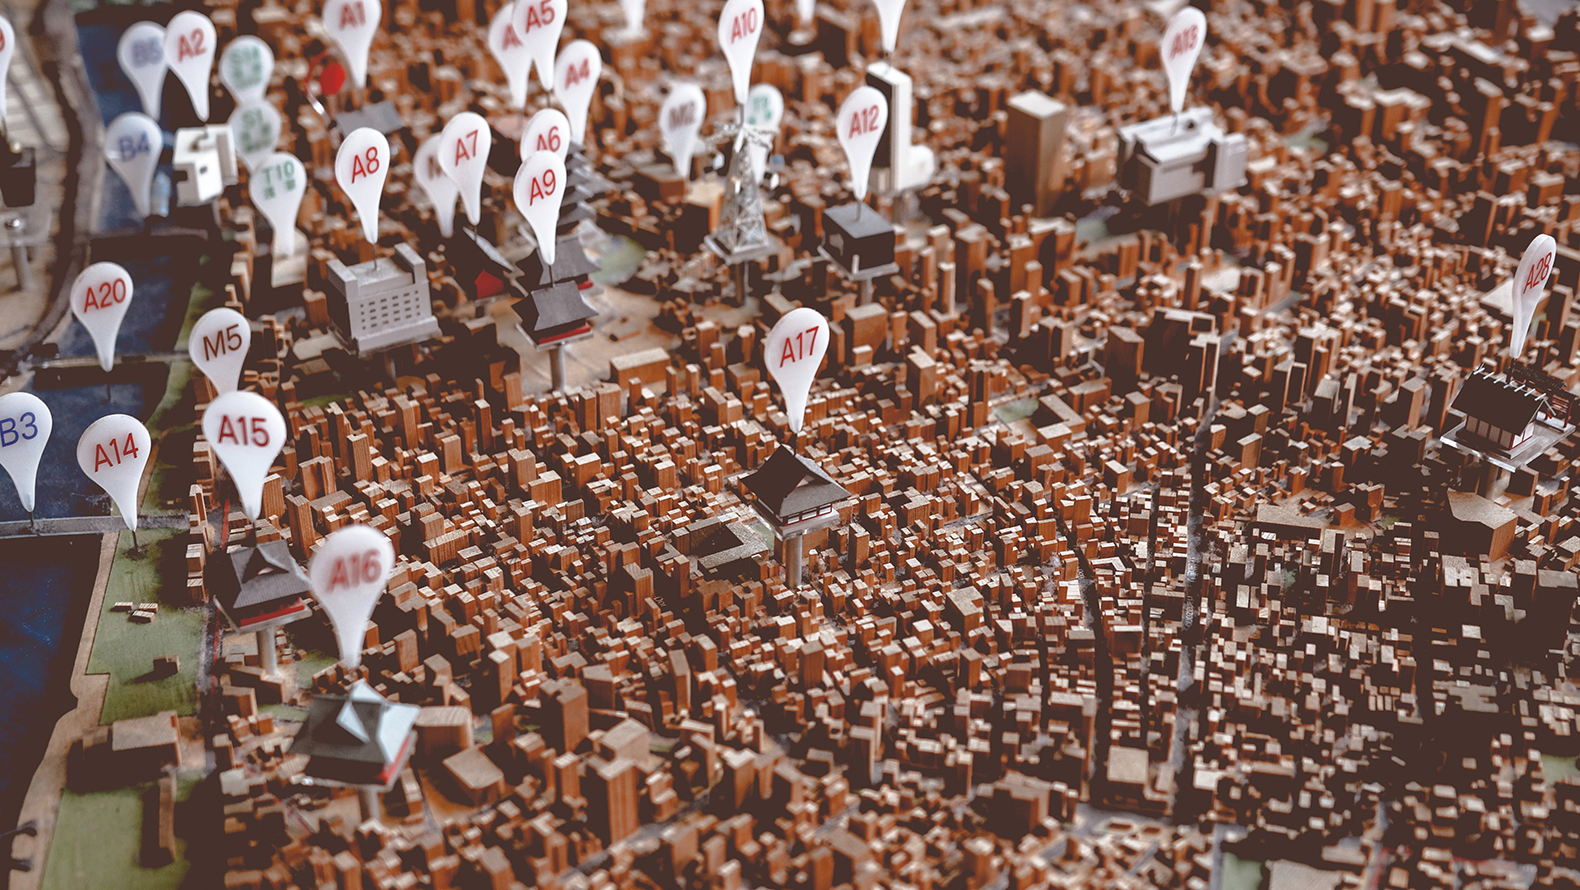 A miniature city with tags over some buildings. Photo: Thor Alvis on Unsplash.